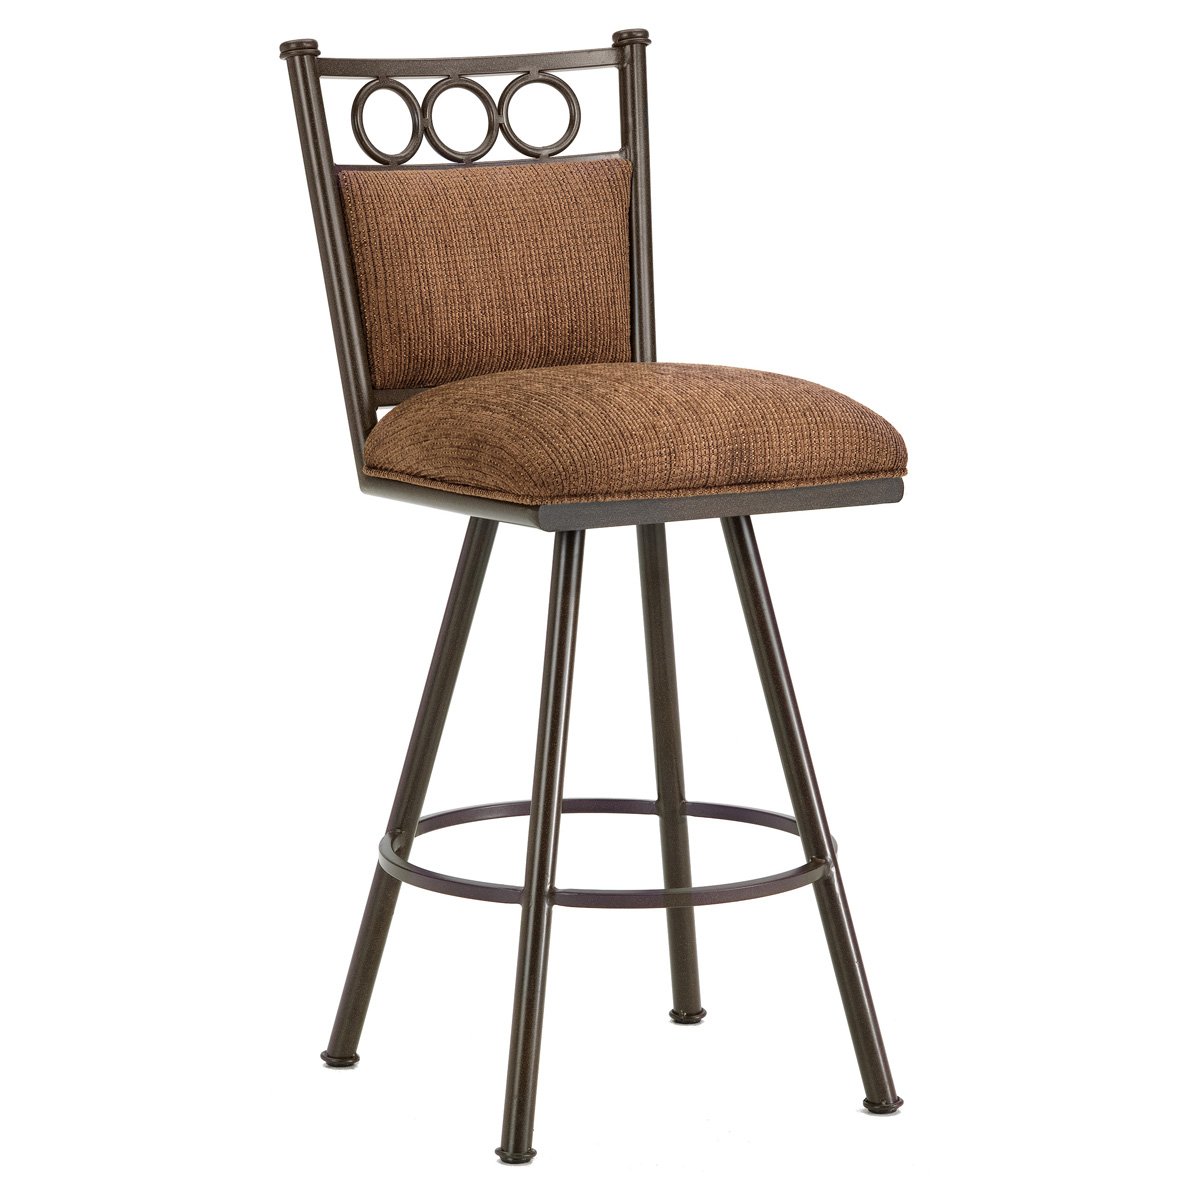 "Waterson 30"" Armless Swivel Bar Stool - Padded, Rust, Chenille"